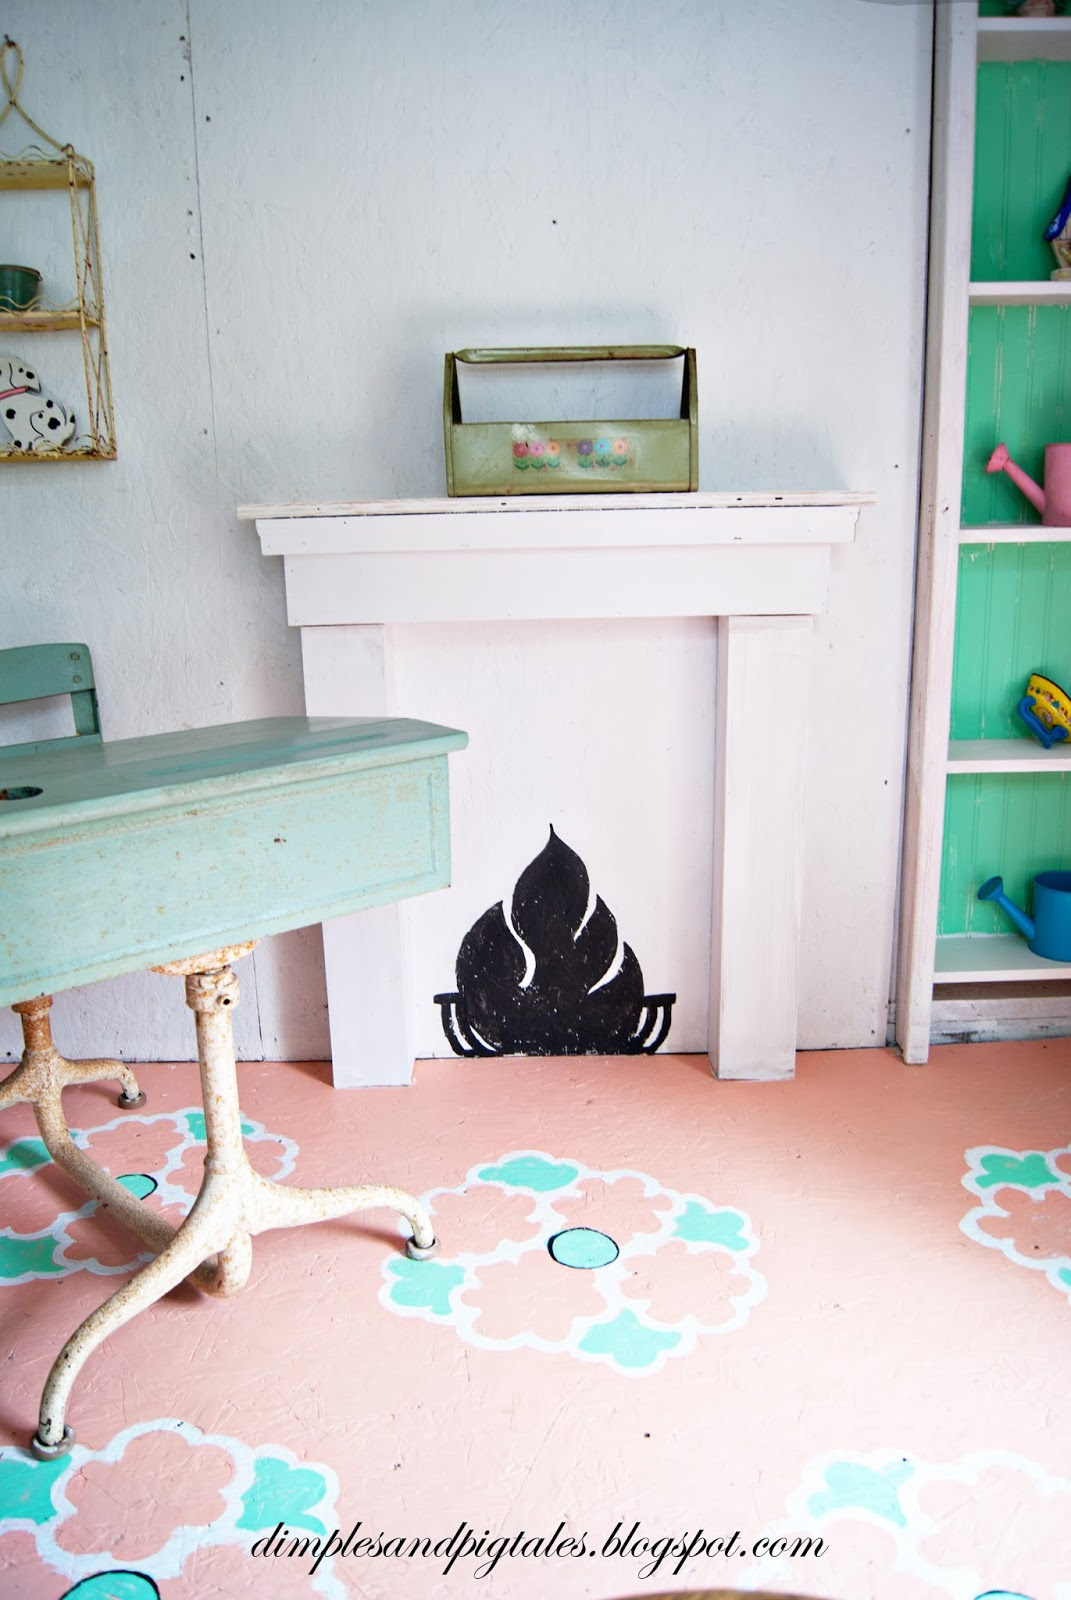 Chalkboard fireplace and vintage accessories.